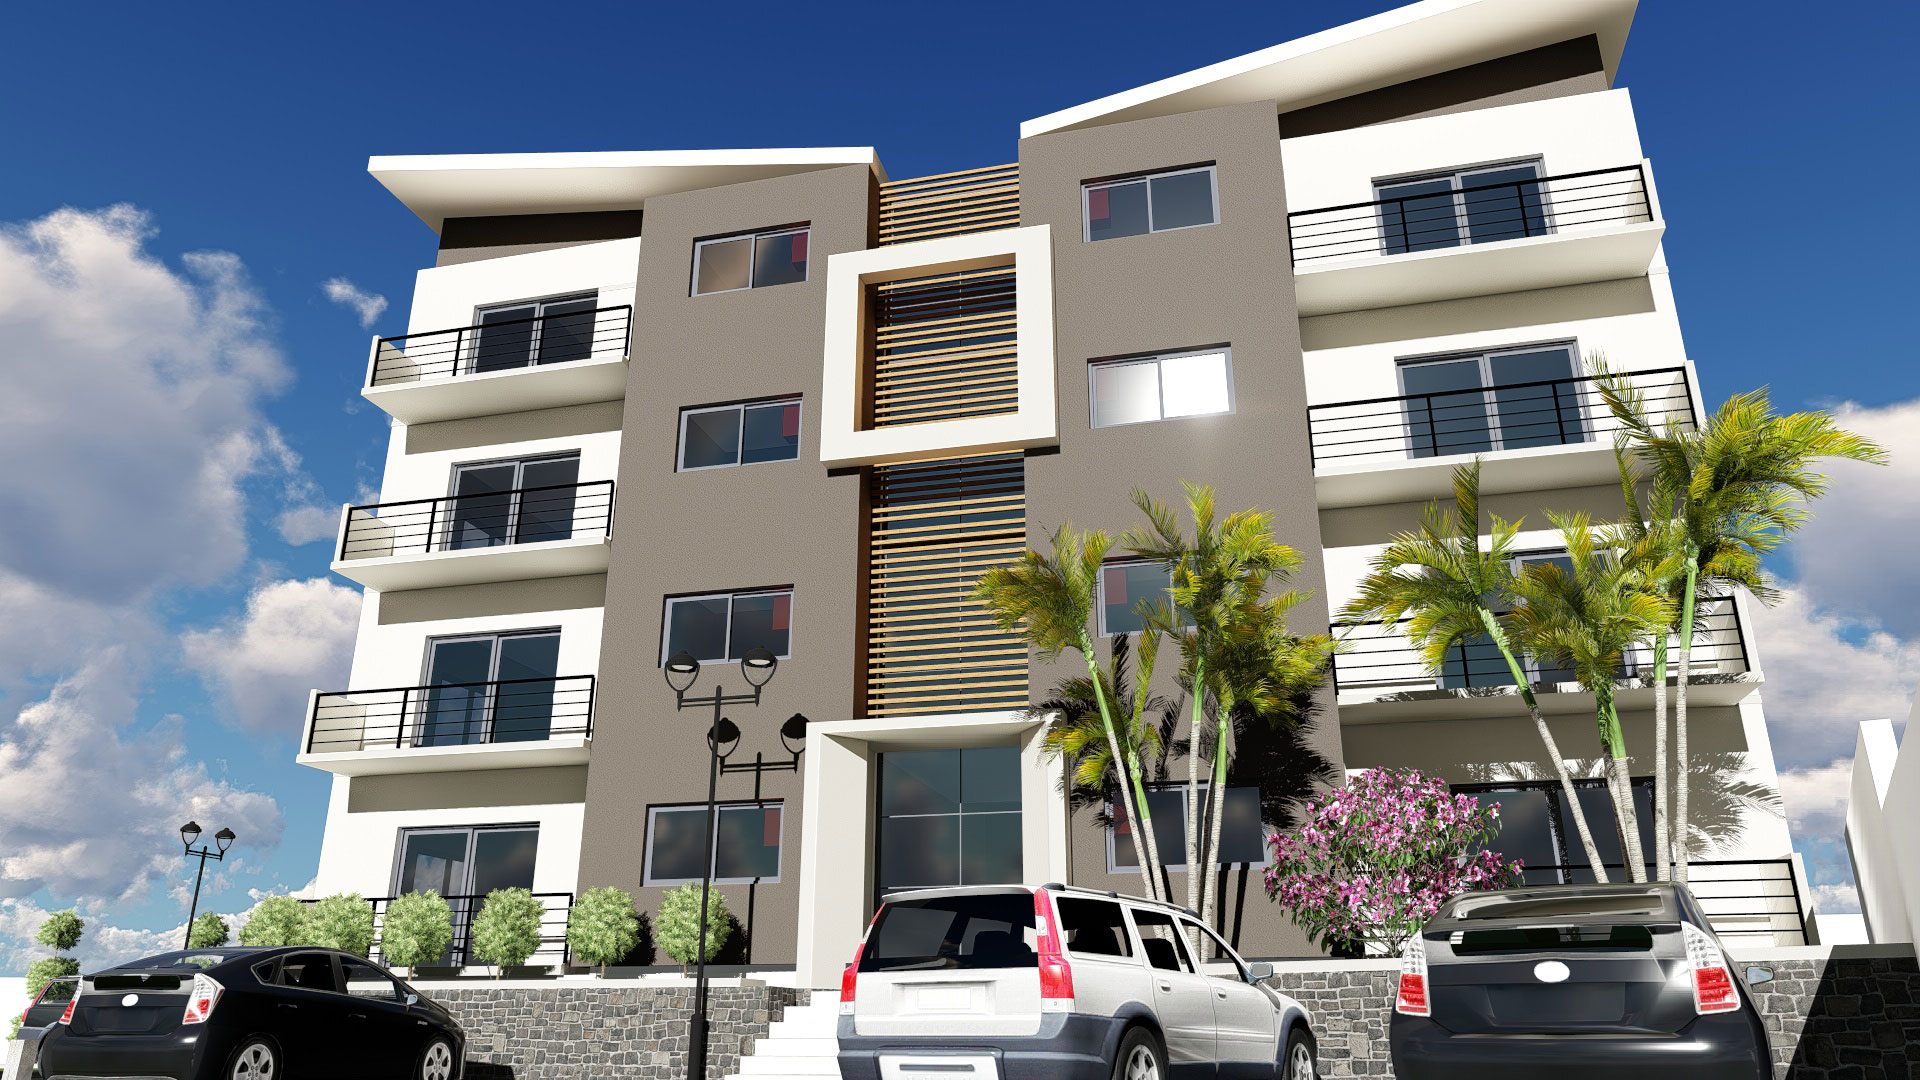 Appartements-Imerinafovoany-Ivato-1